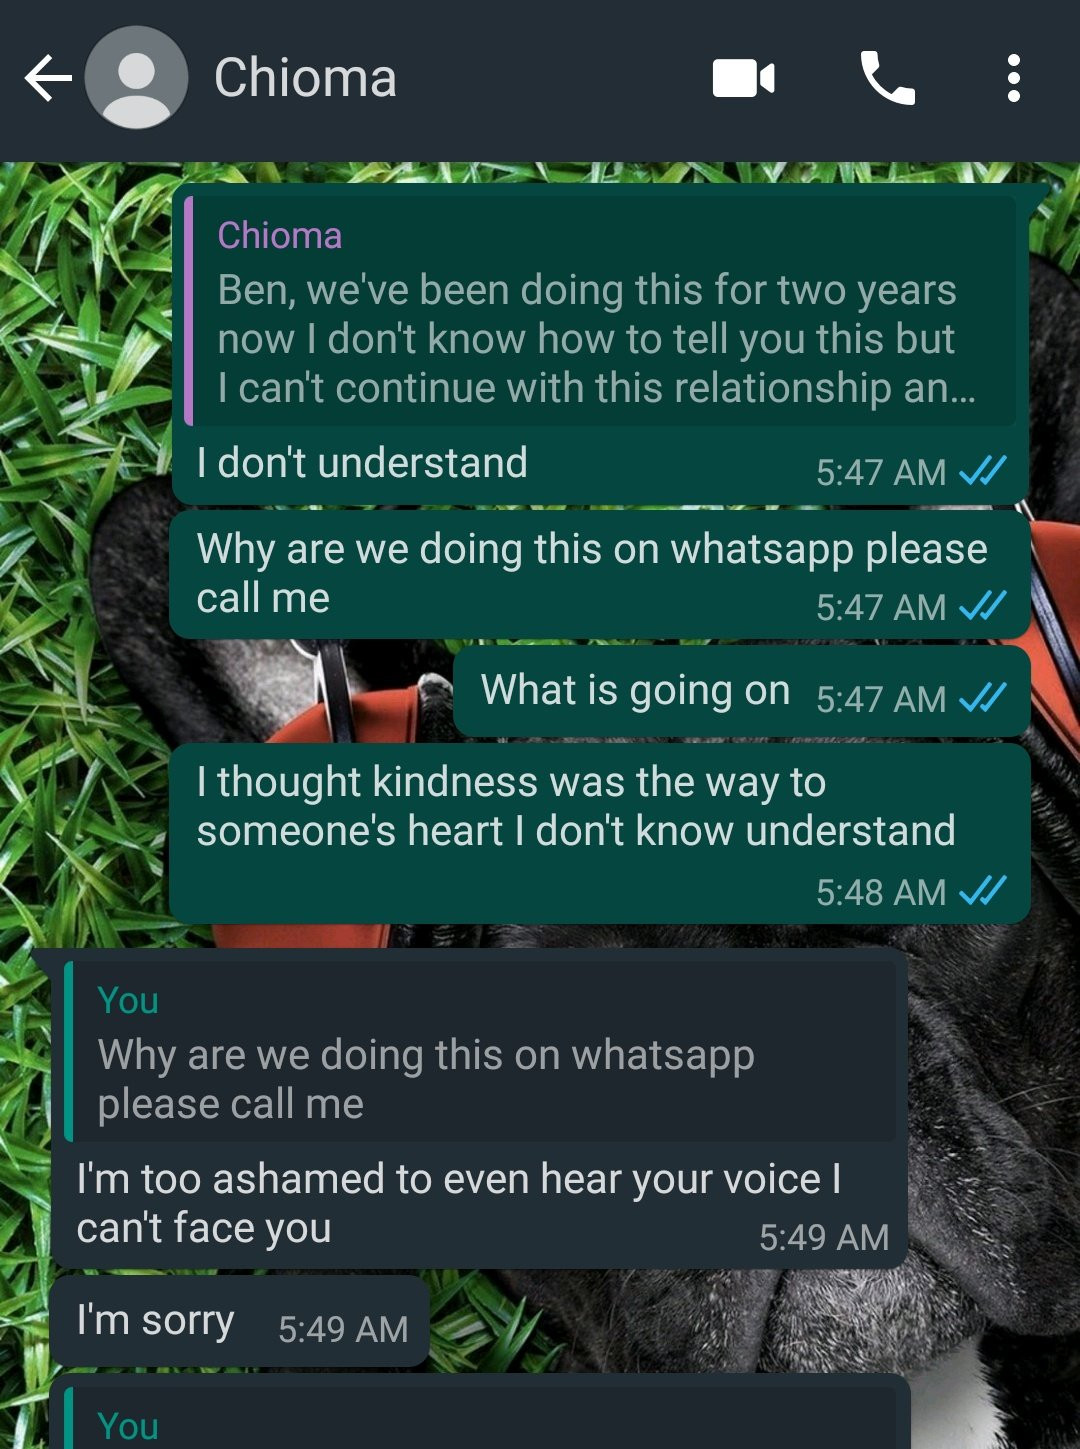 A Nigerian man has been left heartbroken after his girlfriend of two years, Chioma